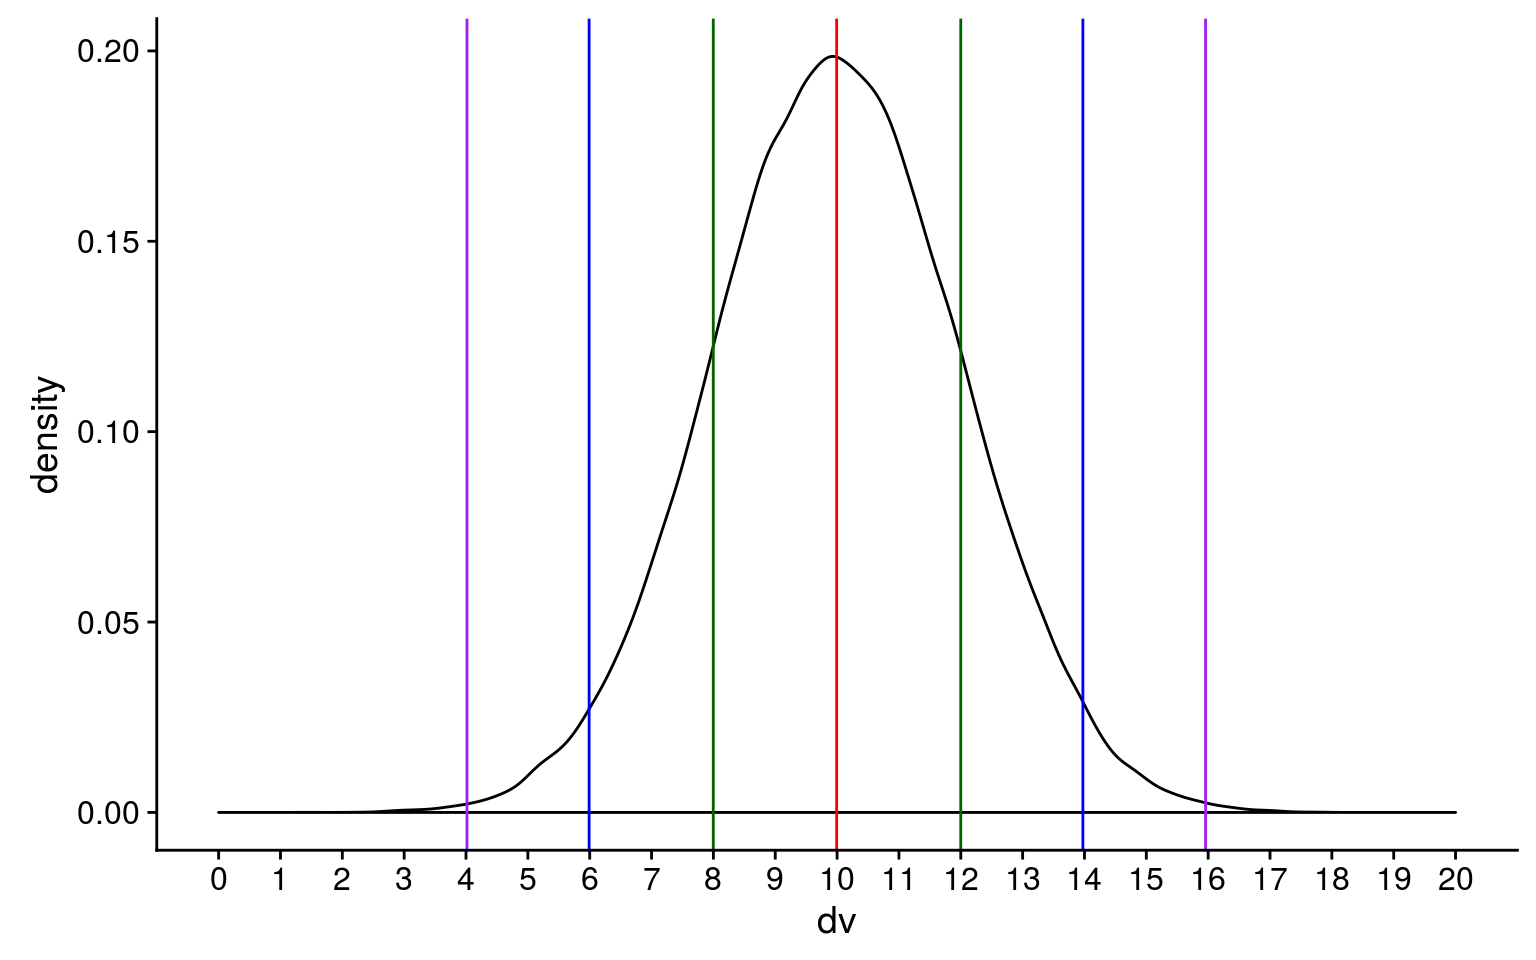 Probability and simulating data